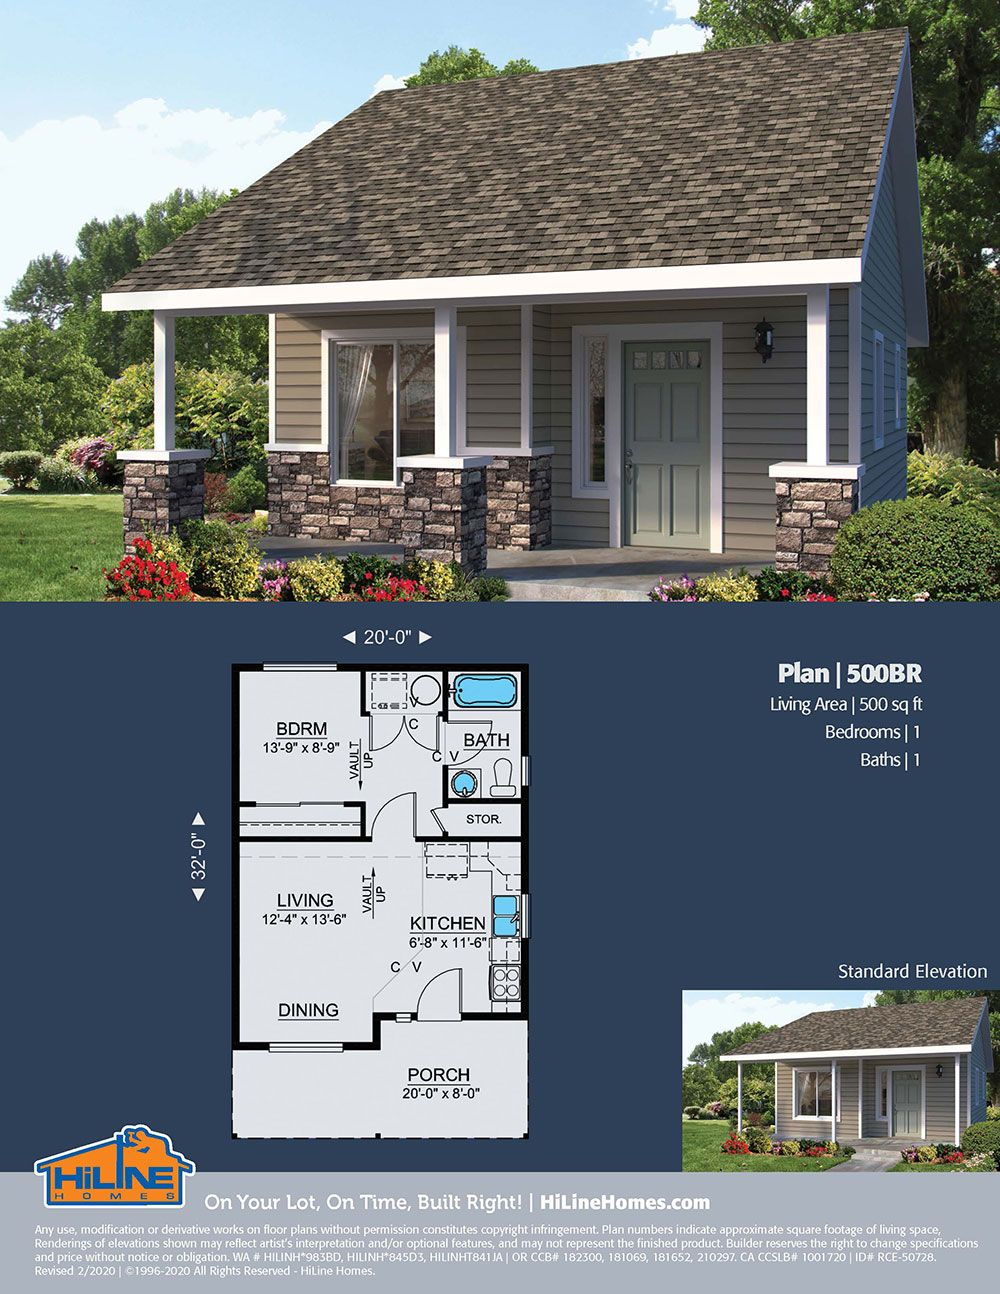 Hiline Homes Plan 500b Floor Plans House Plans Vacation Home